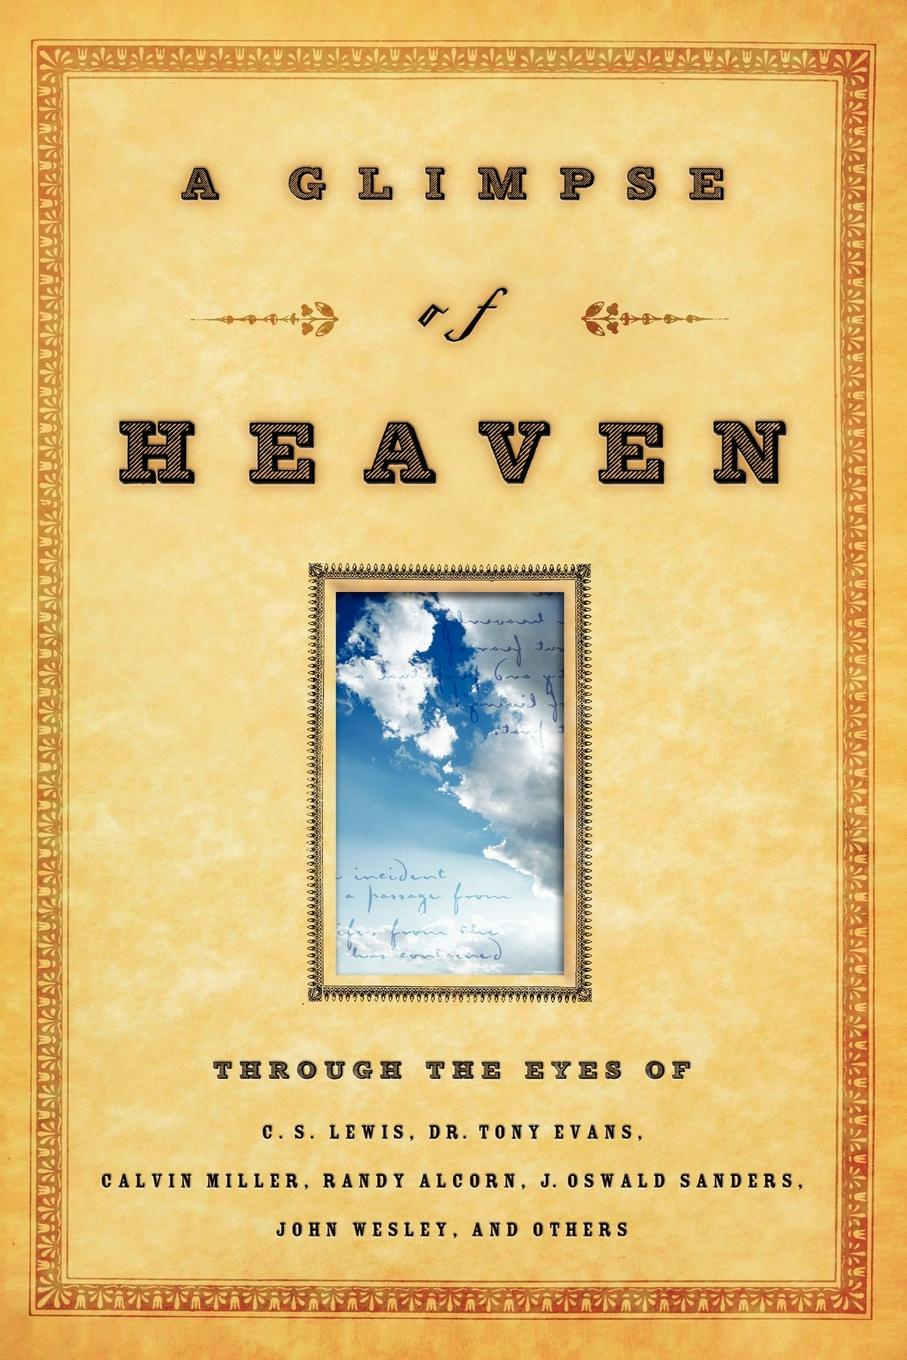 A Glimpse of Heaven. Through the Eyes of C.S. Lewis, Dr. Tony Evans, Calvin Miller, Randy Alcorn. J. Oswald Sanders, John Wesley, and Other a glimpse of heaven through the eyes of c s lewis dr tony evans calvin miller randy alcorn j oswald sanders john wesley and other